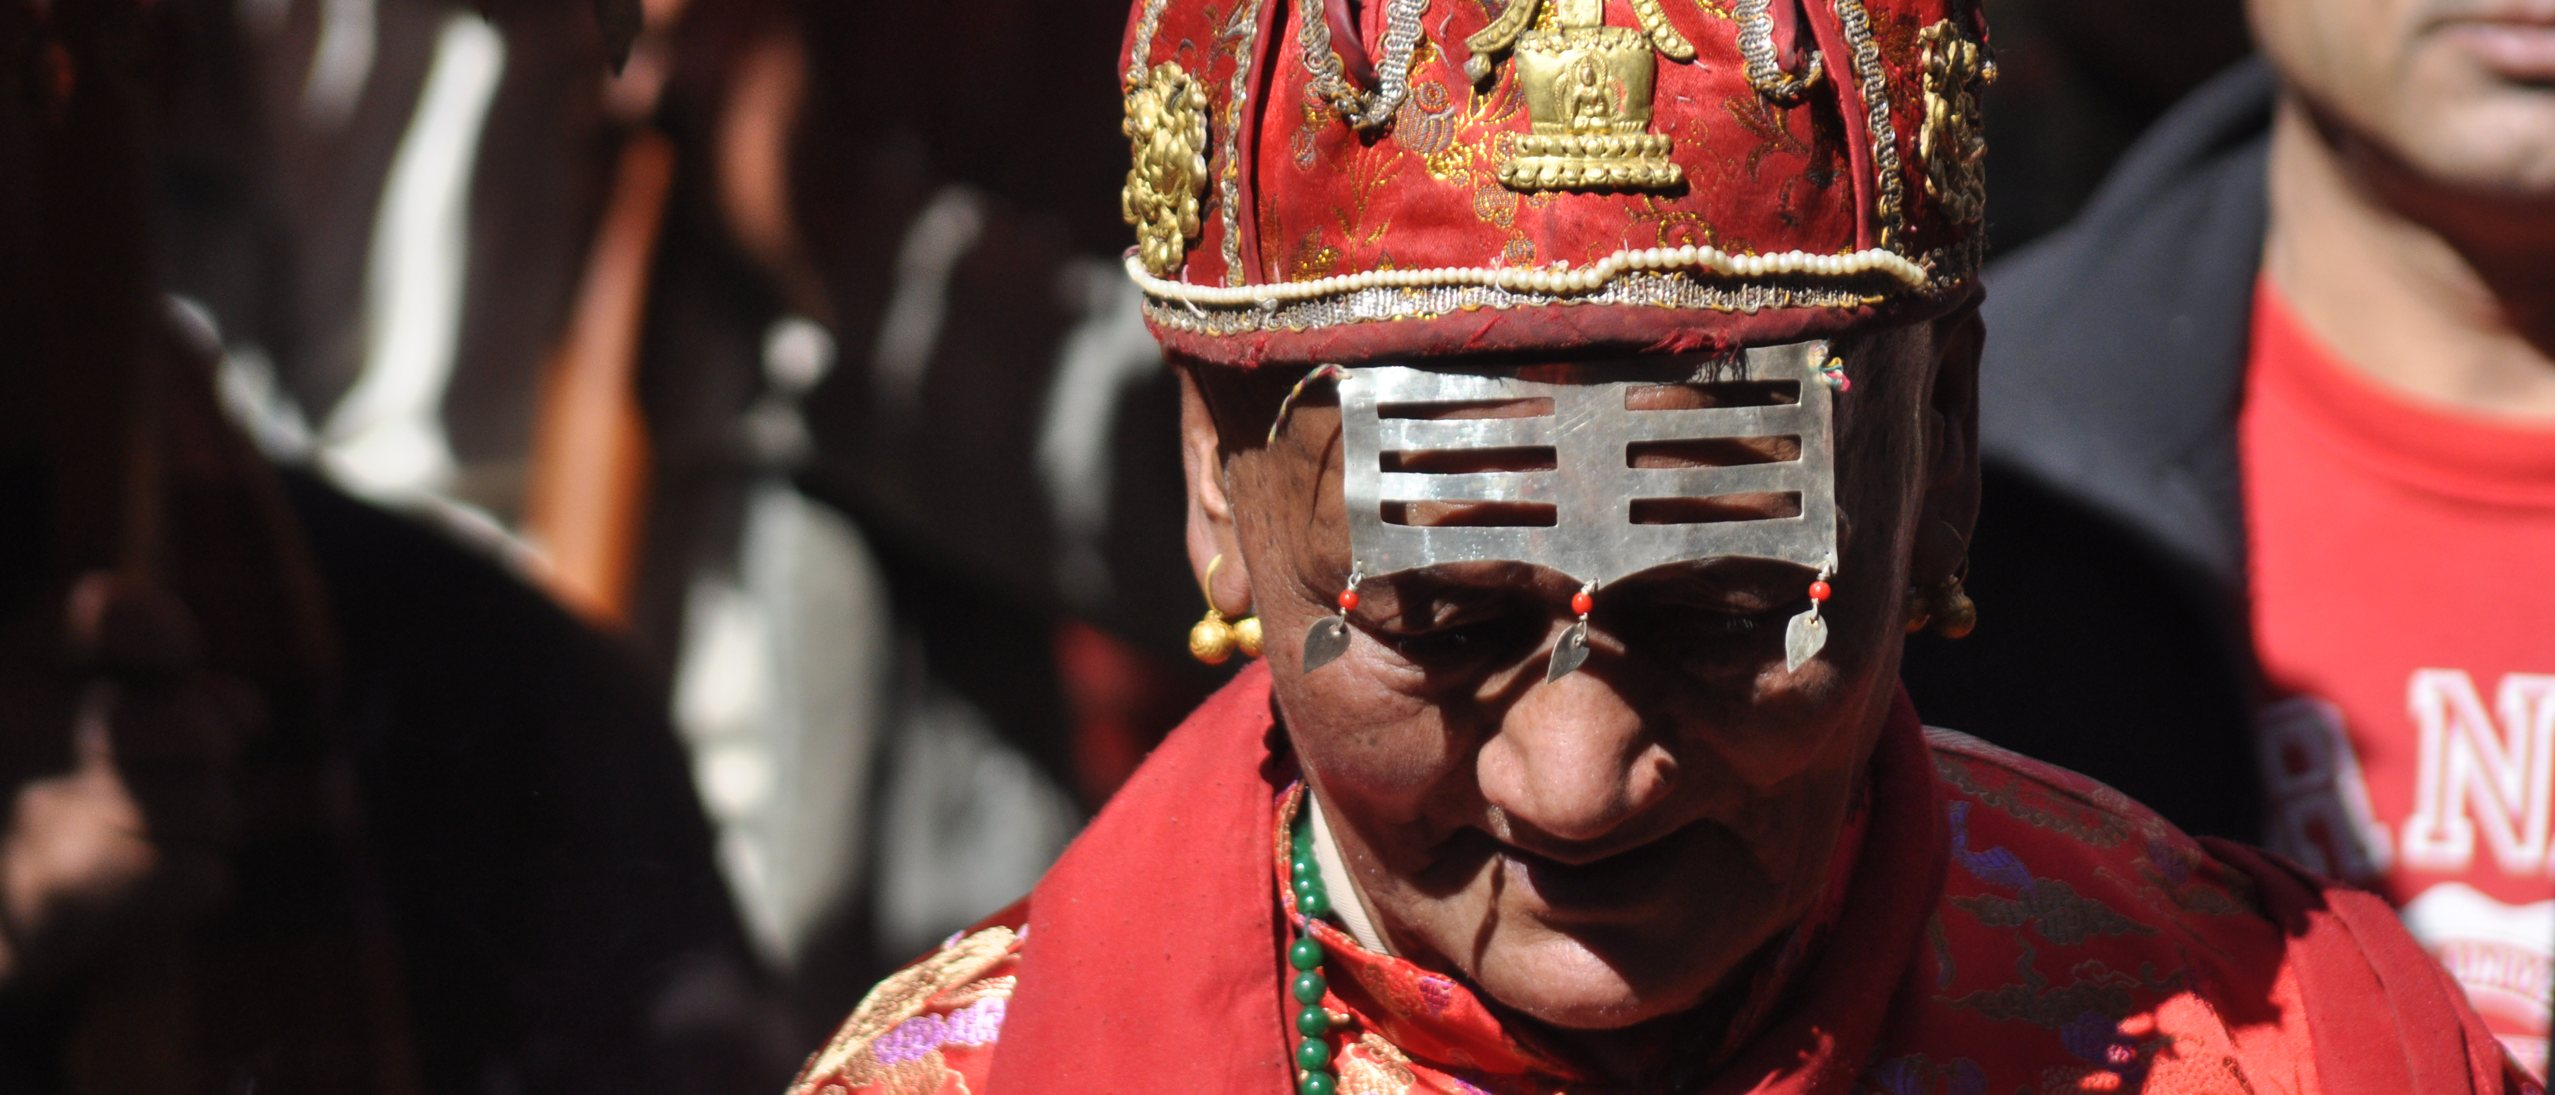 man in red ceremonial dress